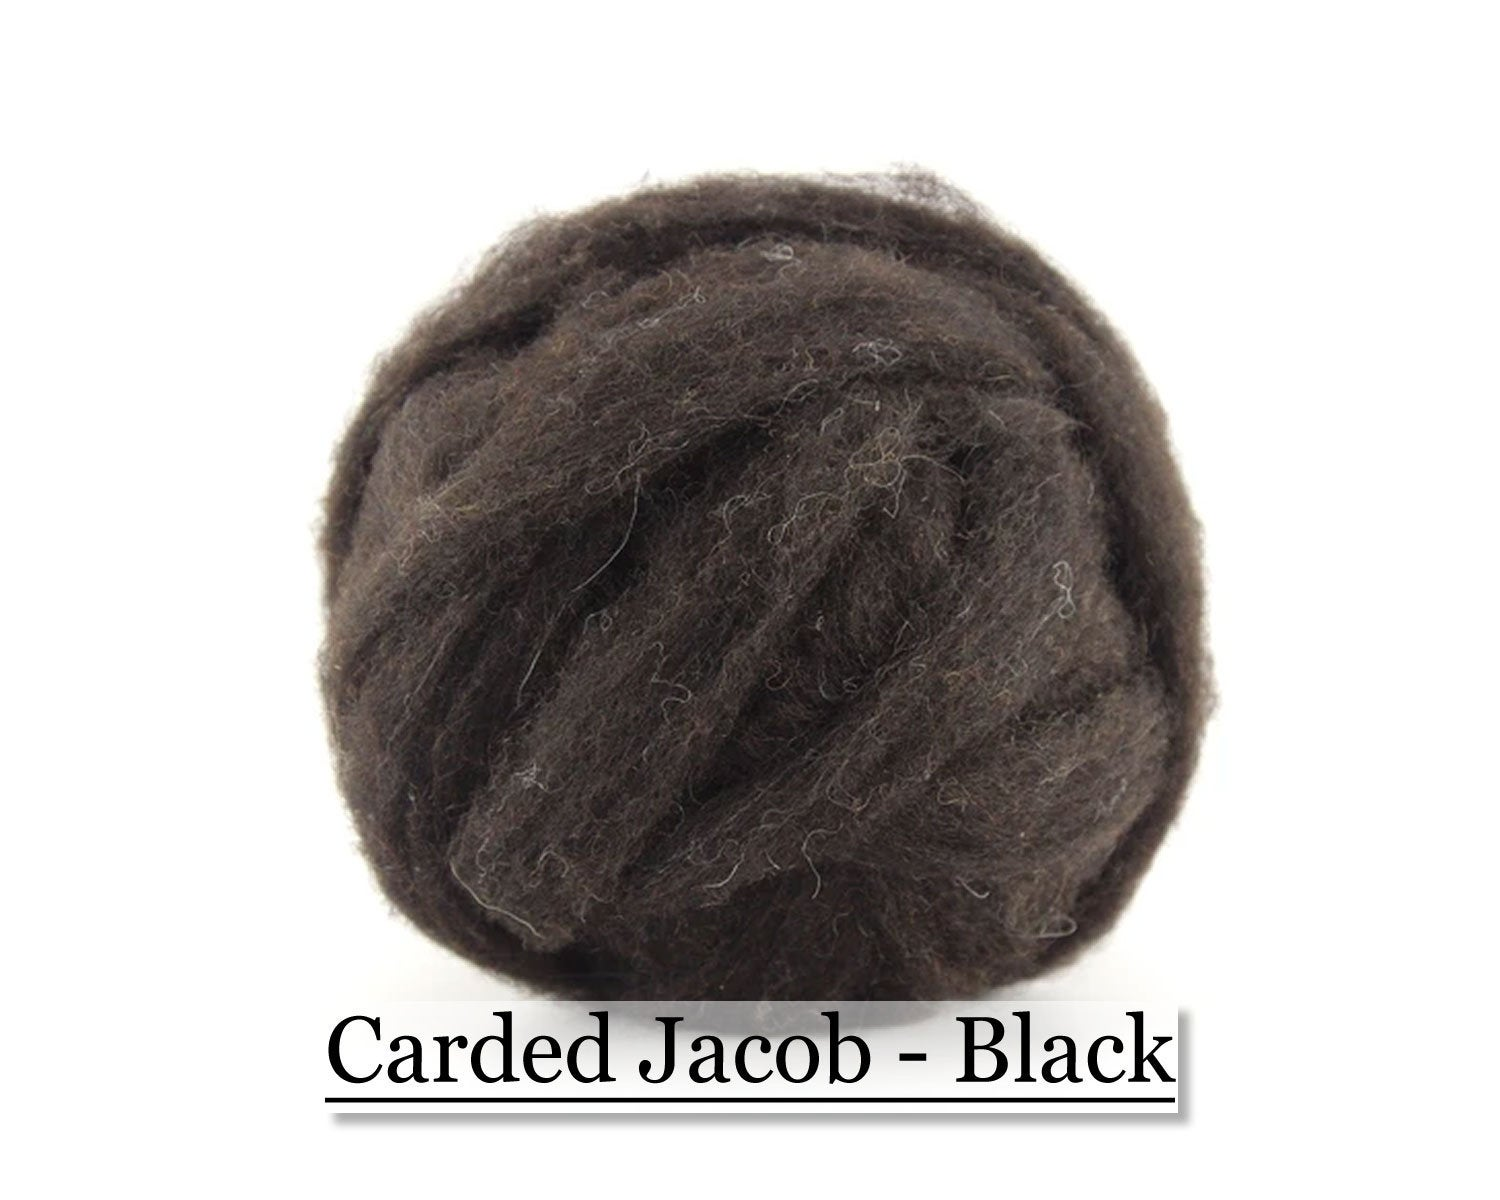 Jacob Sliver - Black - Needle Felting - Spinning - Wet Felting - Nuno Felting - Wet Felting - 16oz